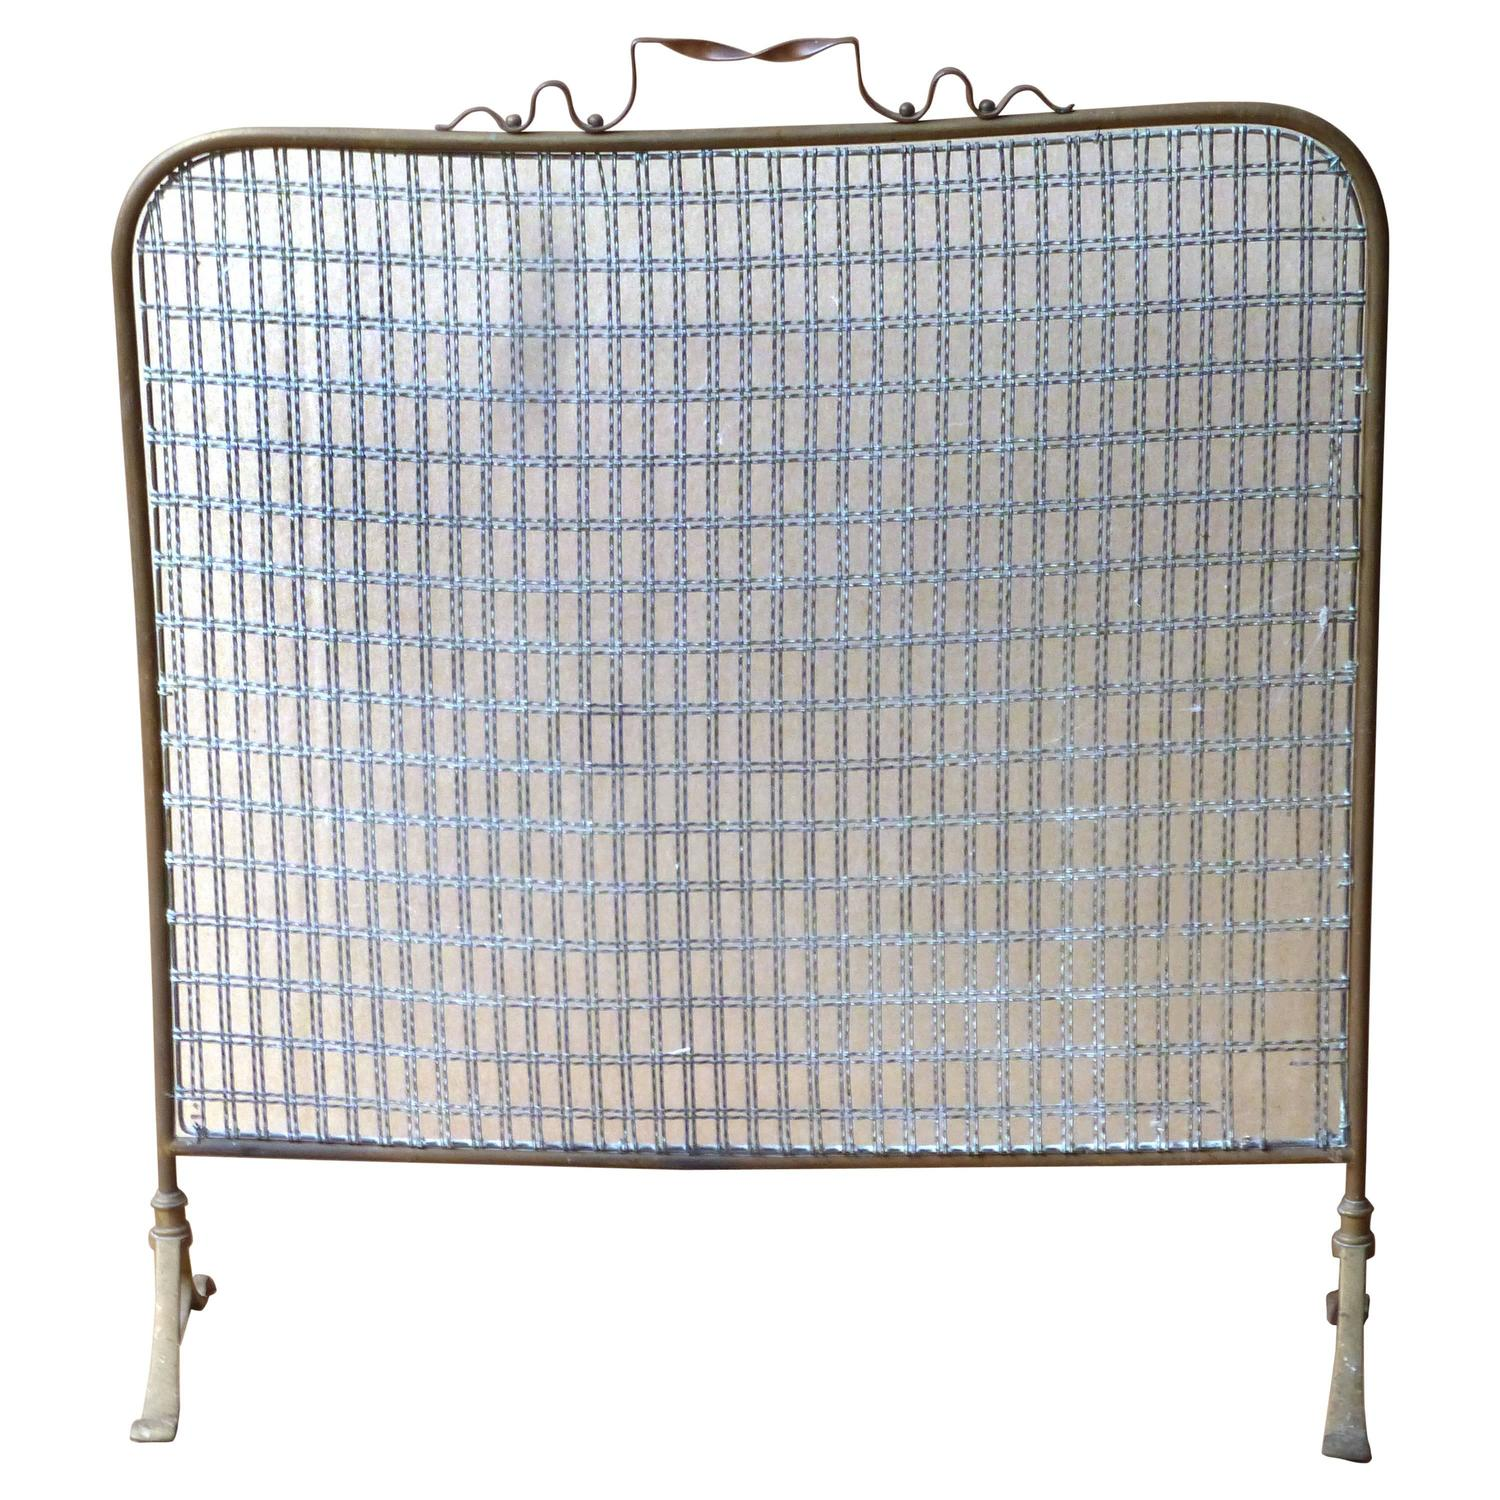 19th century brass fireplace screen fire screen for sale at 1stdibs